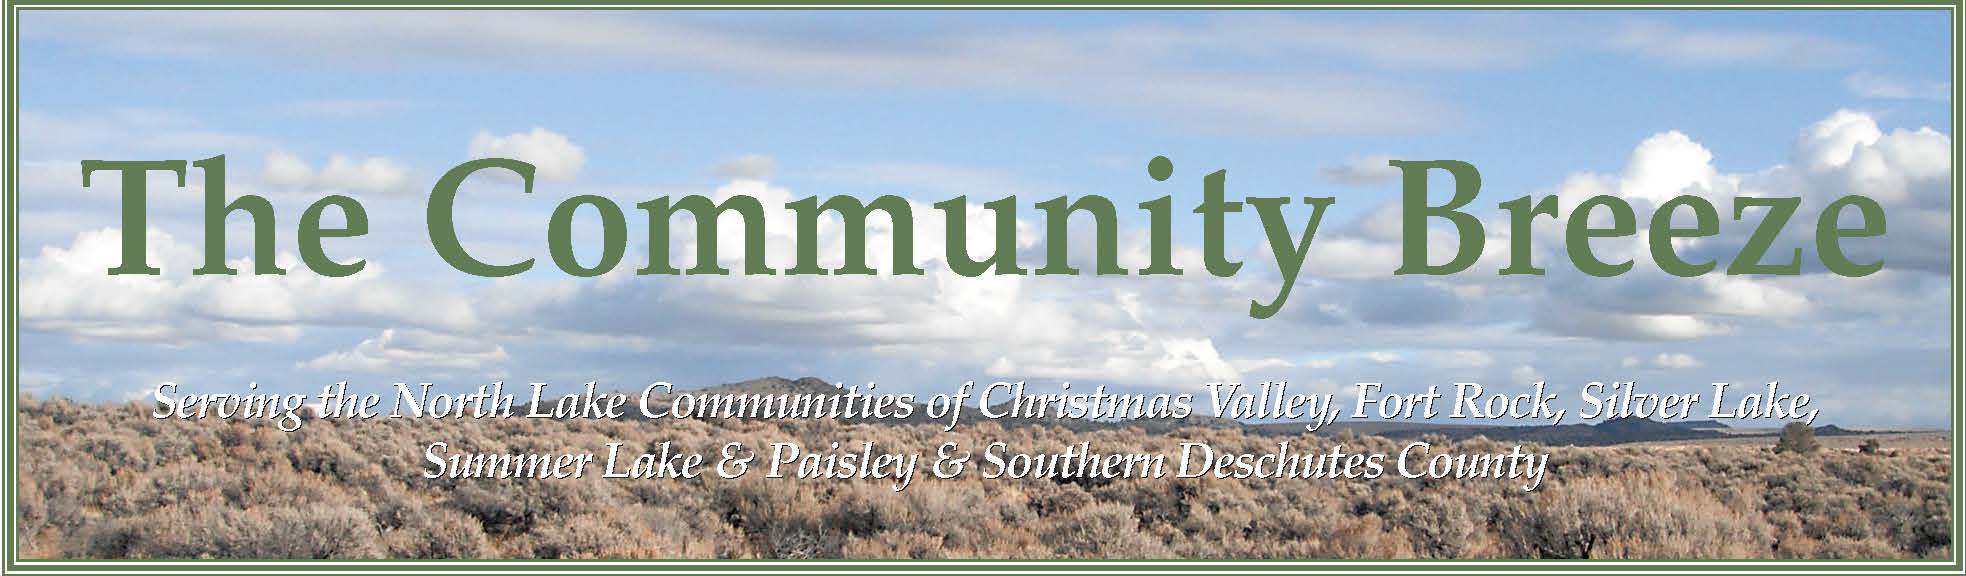 The Community Breeze Masthead